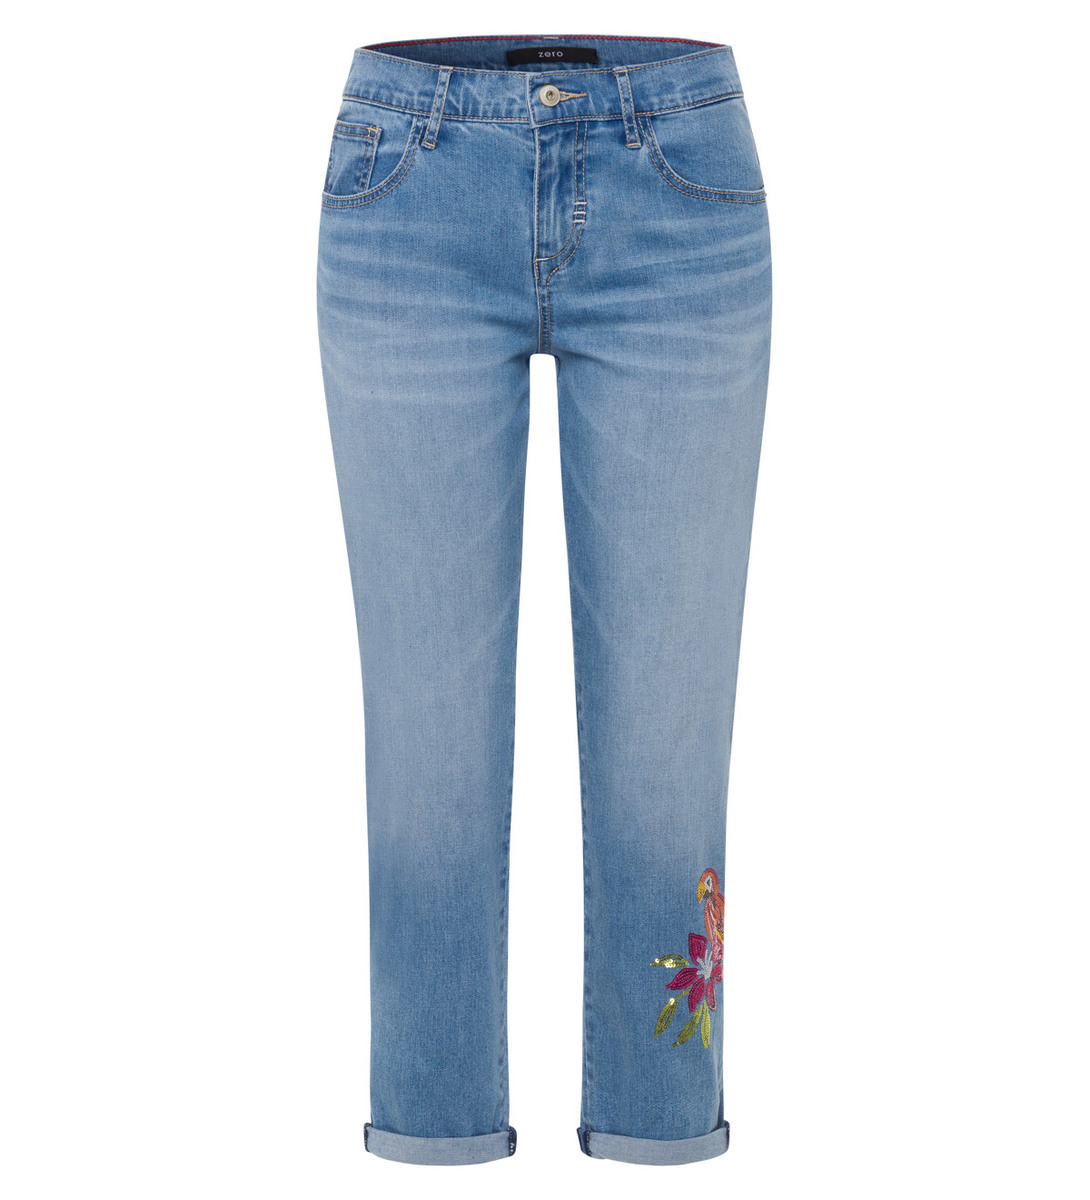 Jeans mit Applikation in mid blue pailette